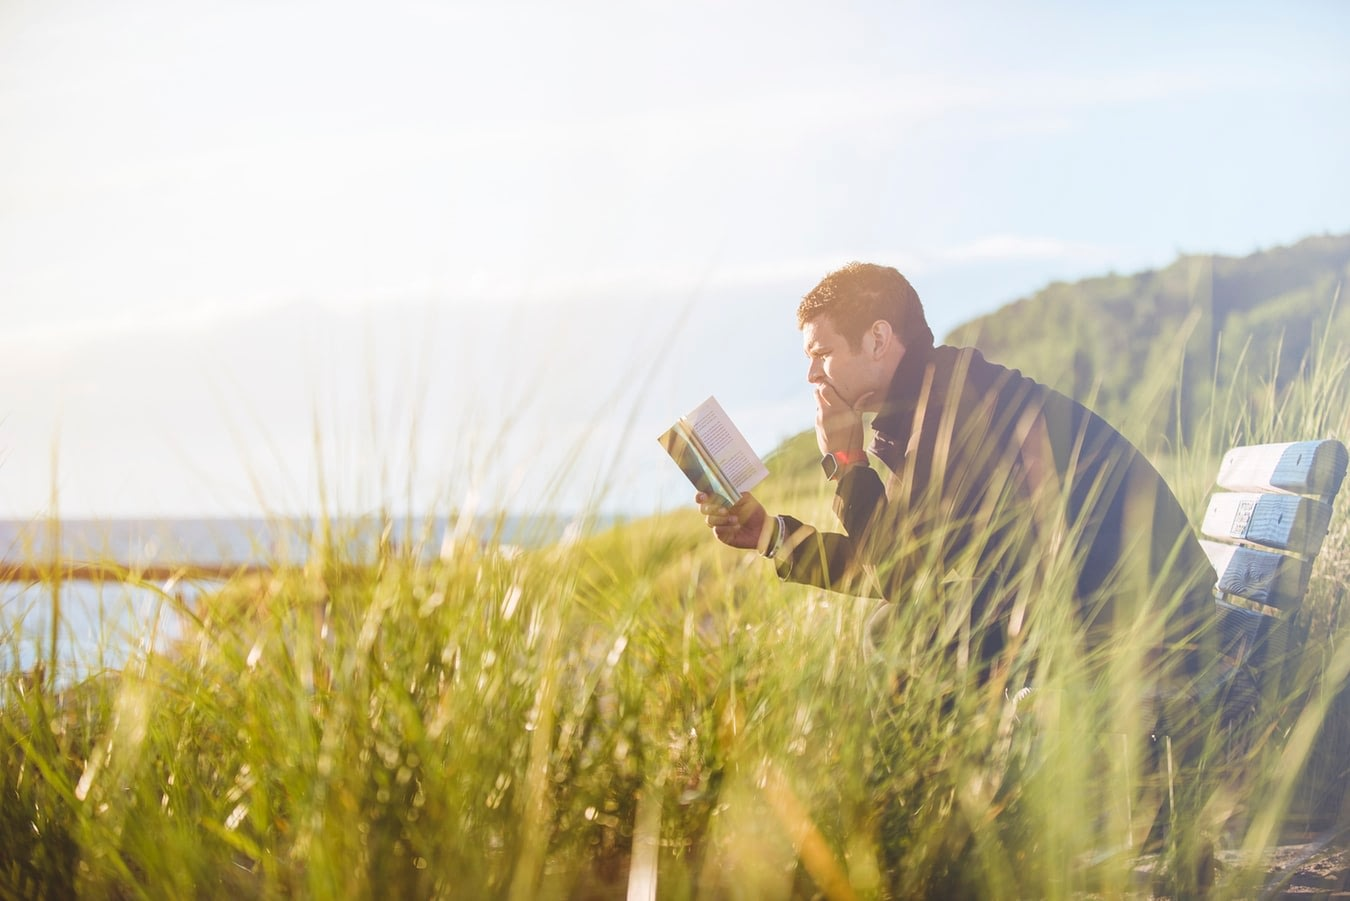 Healthy man reading a book while sitting on a bench in a field